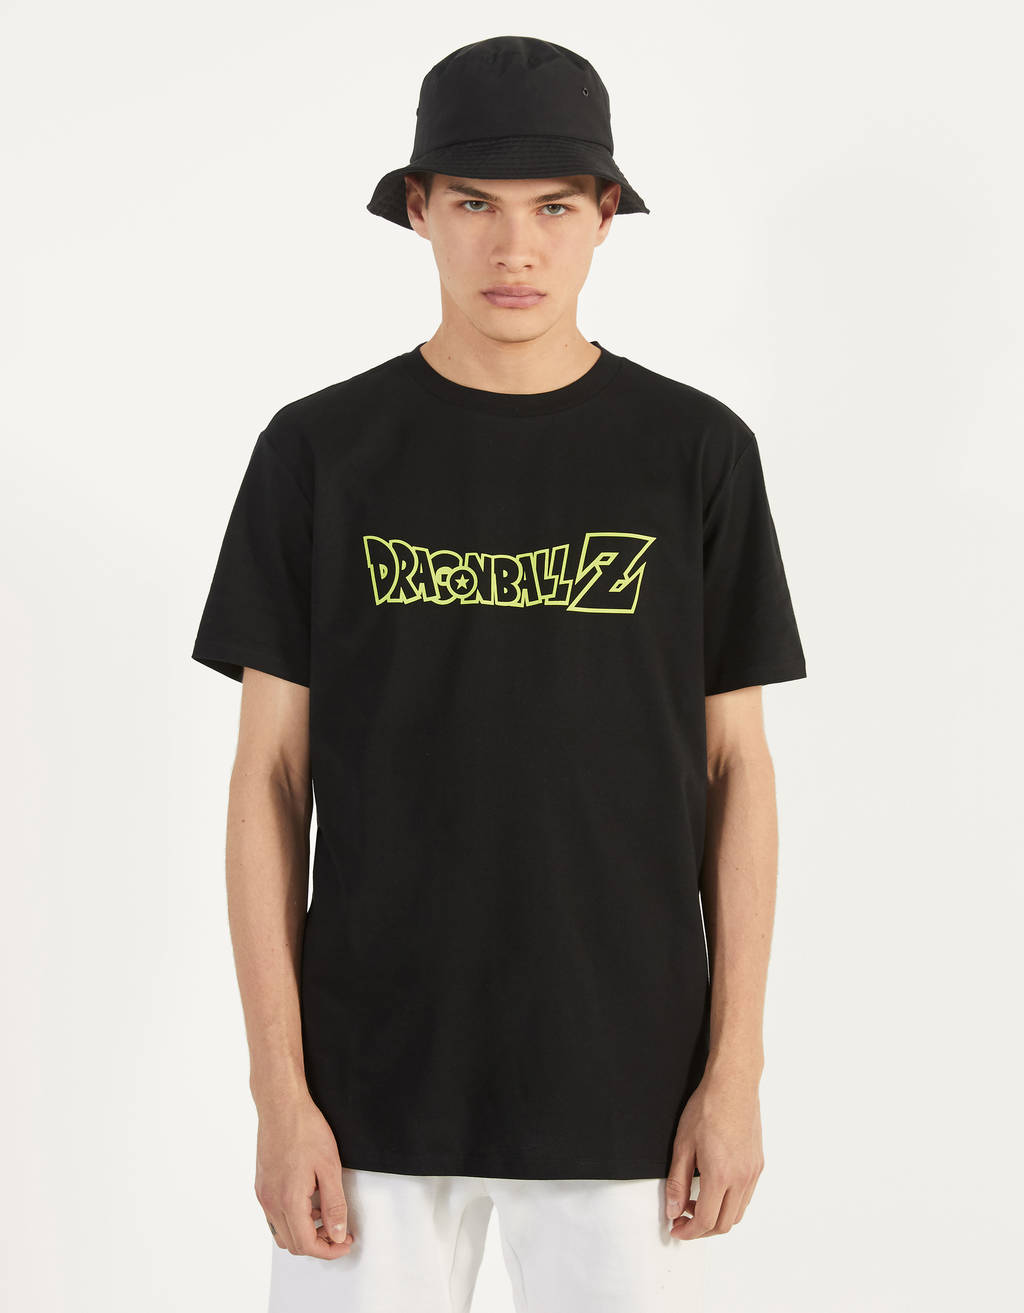 Μπλούζα Dragon Ball Z x Bershka